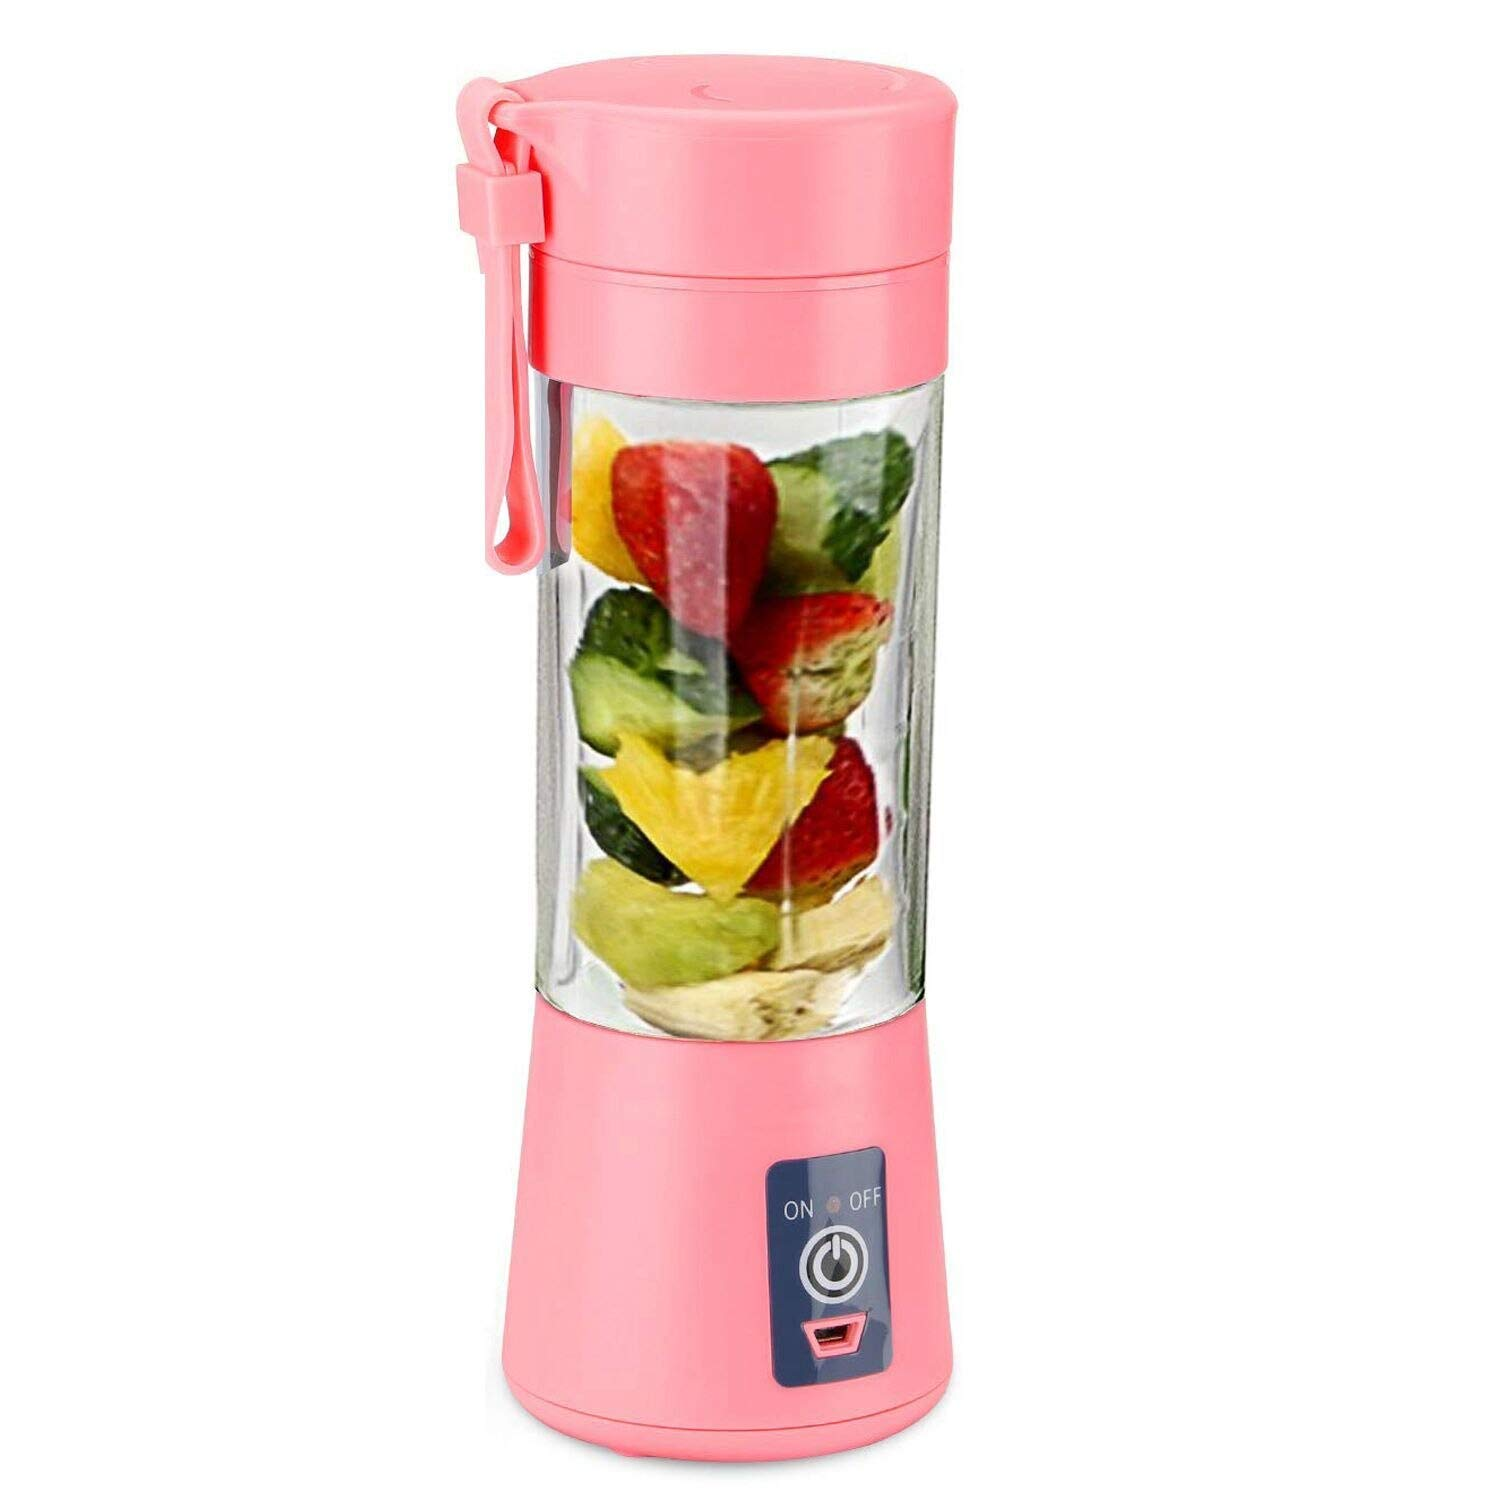 Juicer 400Ml 6 Blades Handhels Juicer Bottle Portable Mini Usb Electric Fruit Lemon Juicer Blender Squeezer Reamer